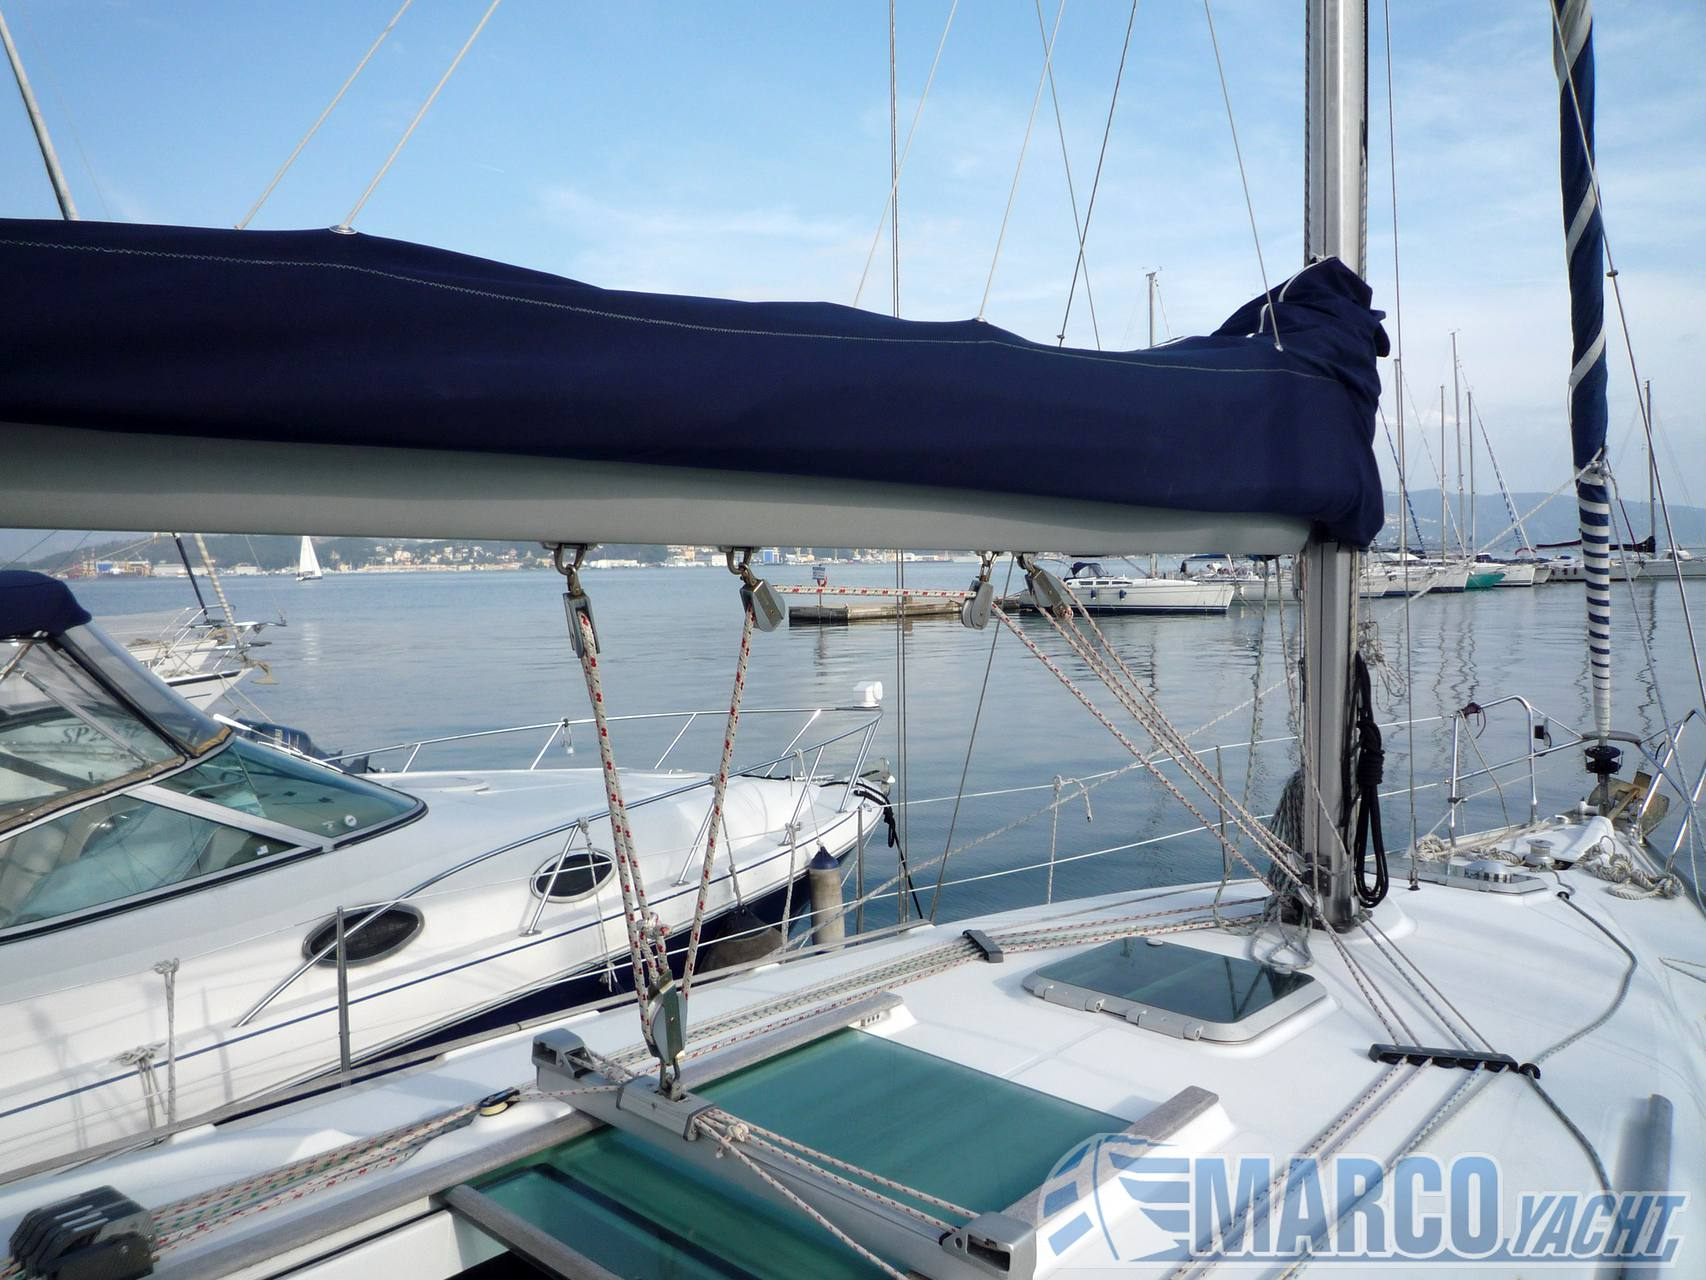 JEANNEAU Sun odyssey 37 Sailing boat used for sale